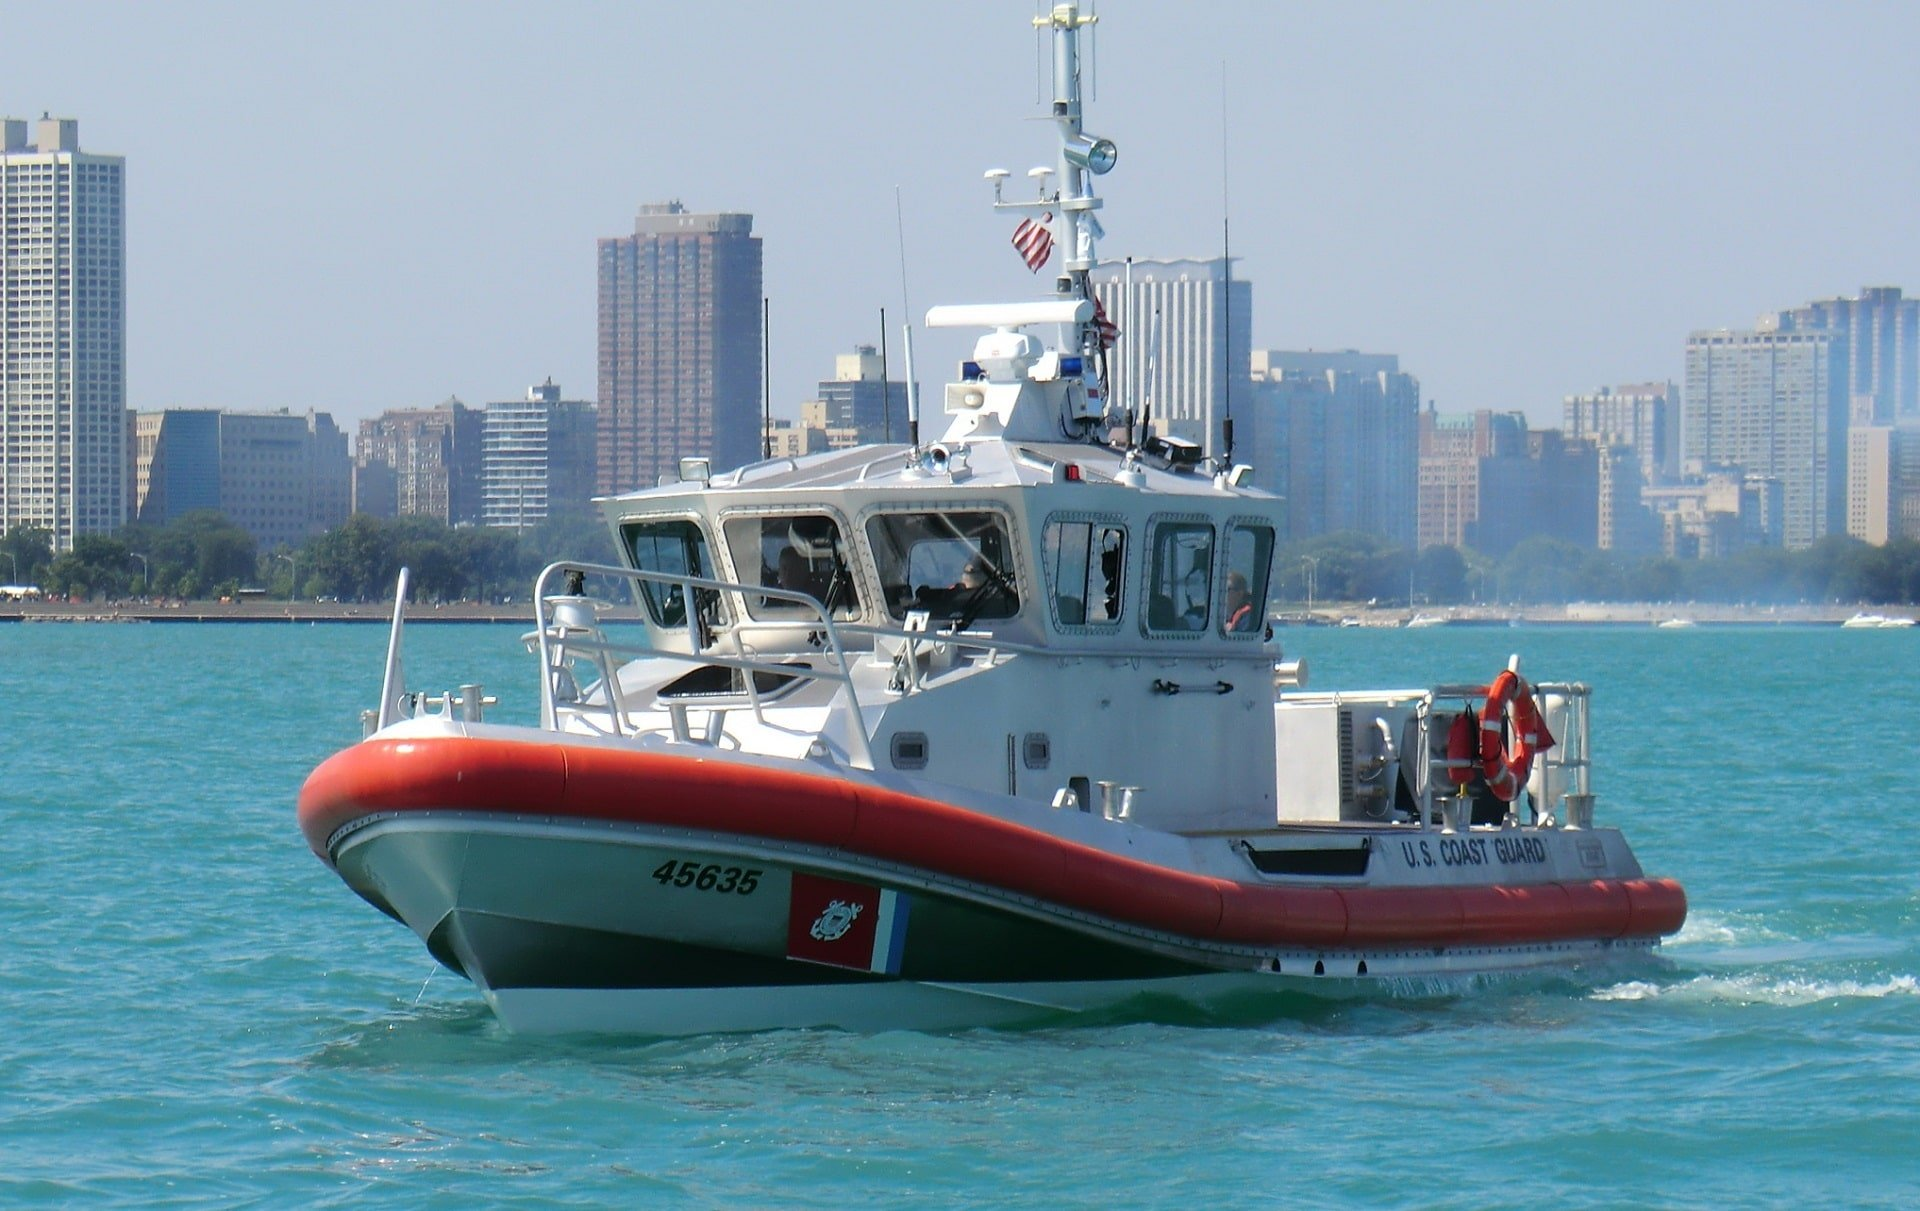 Coast Guard boat on the water